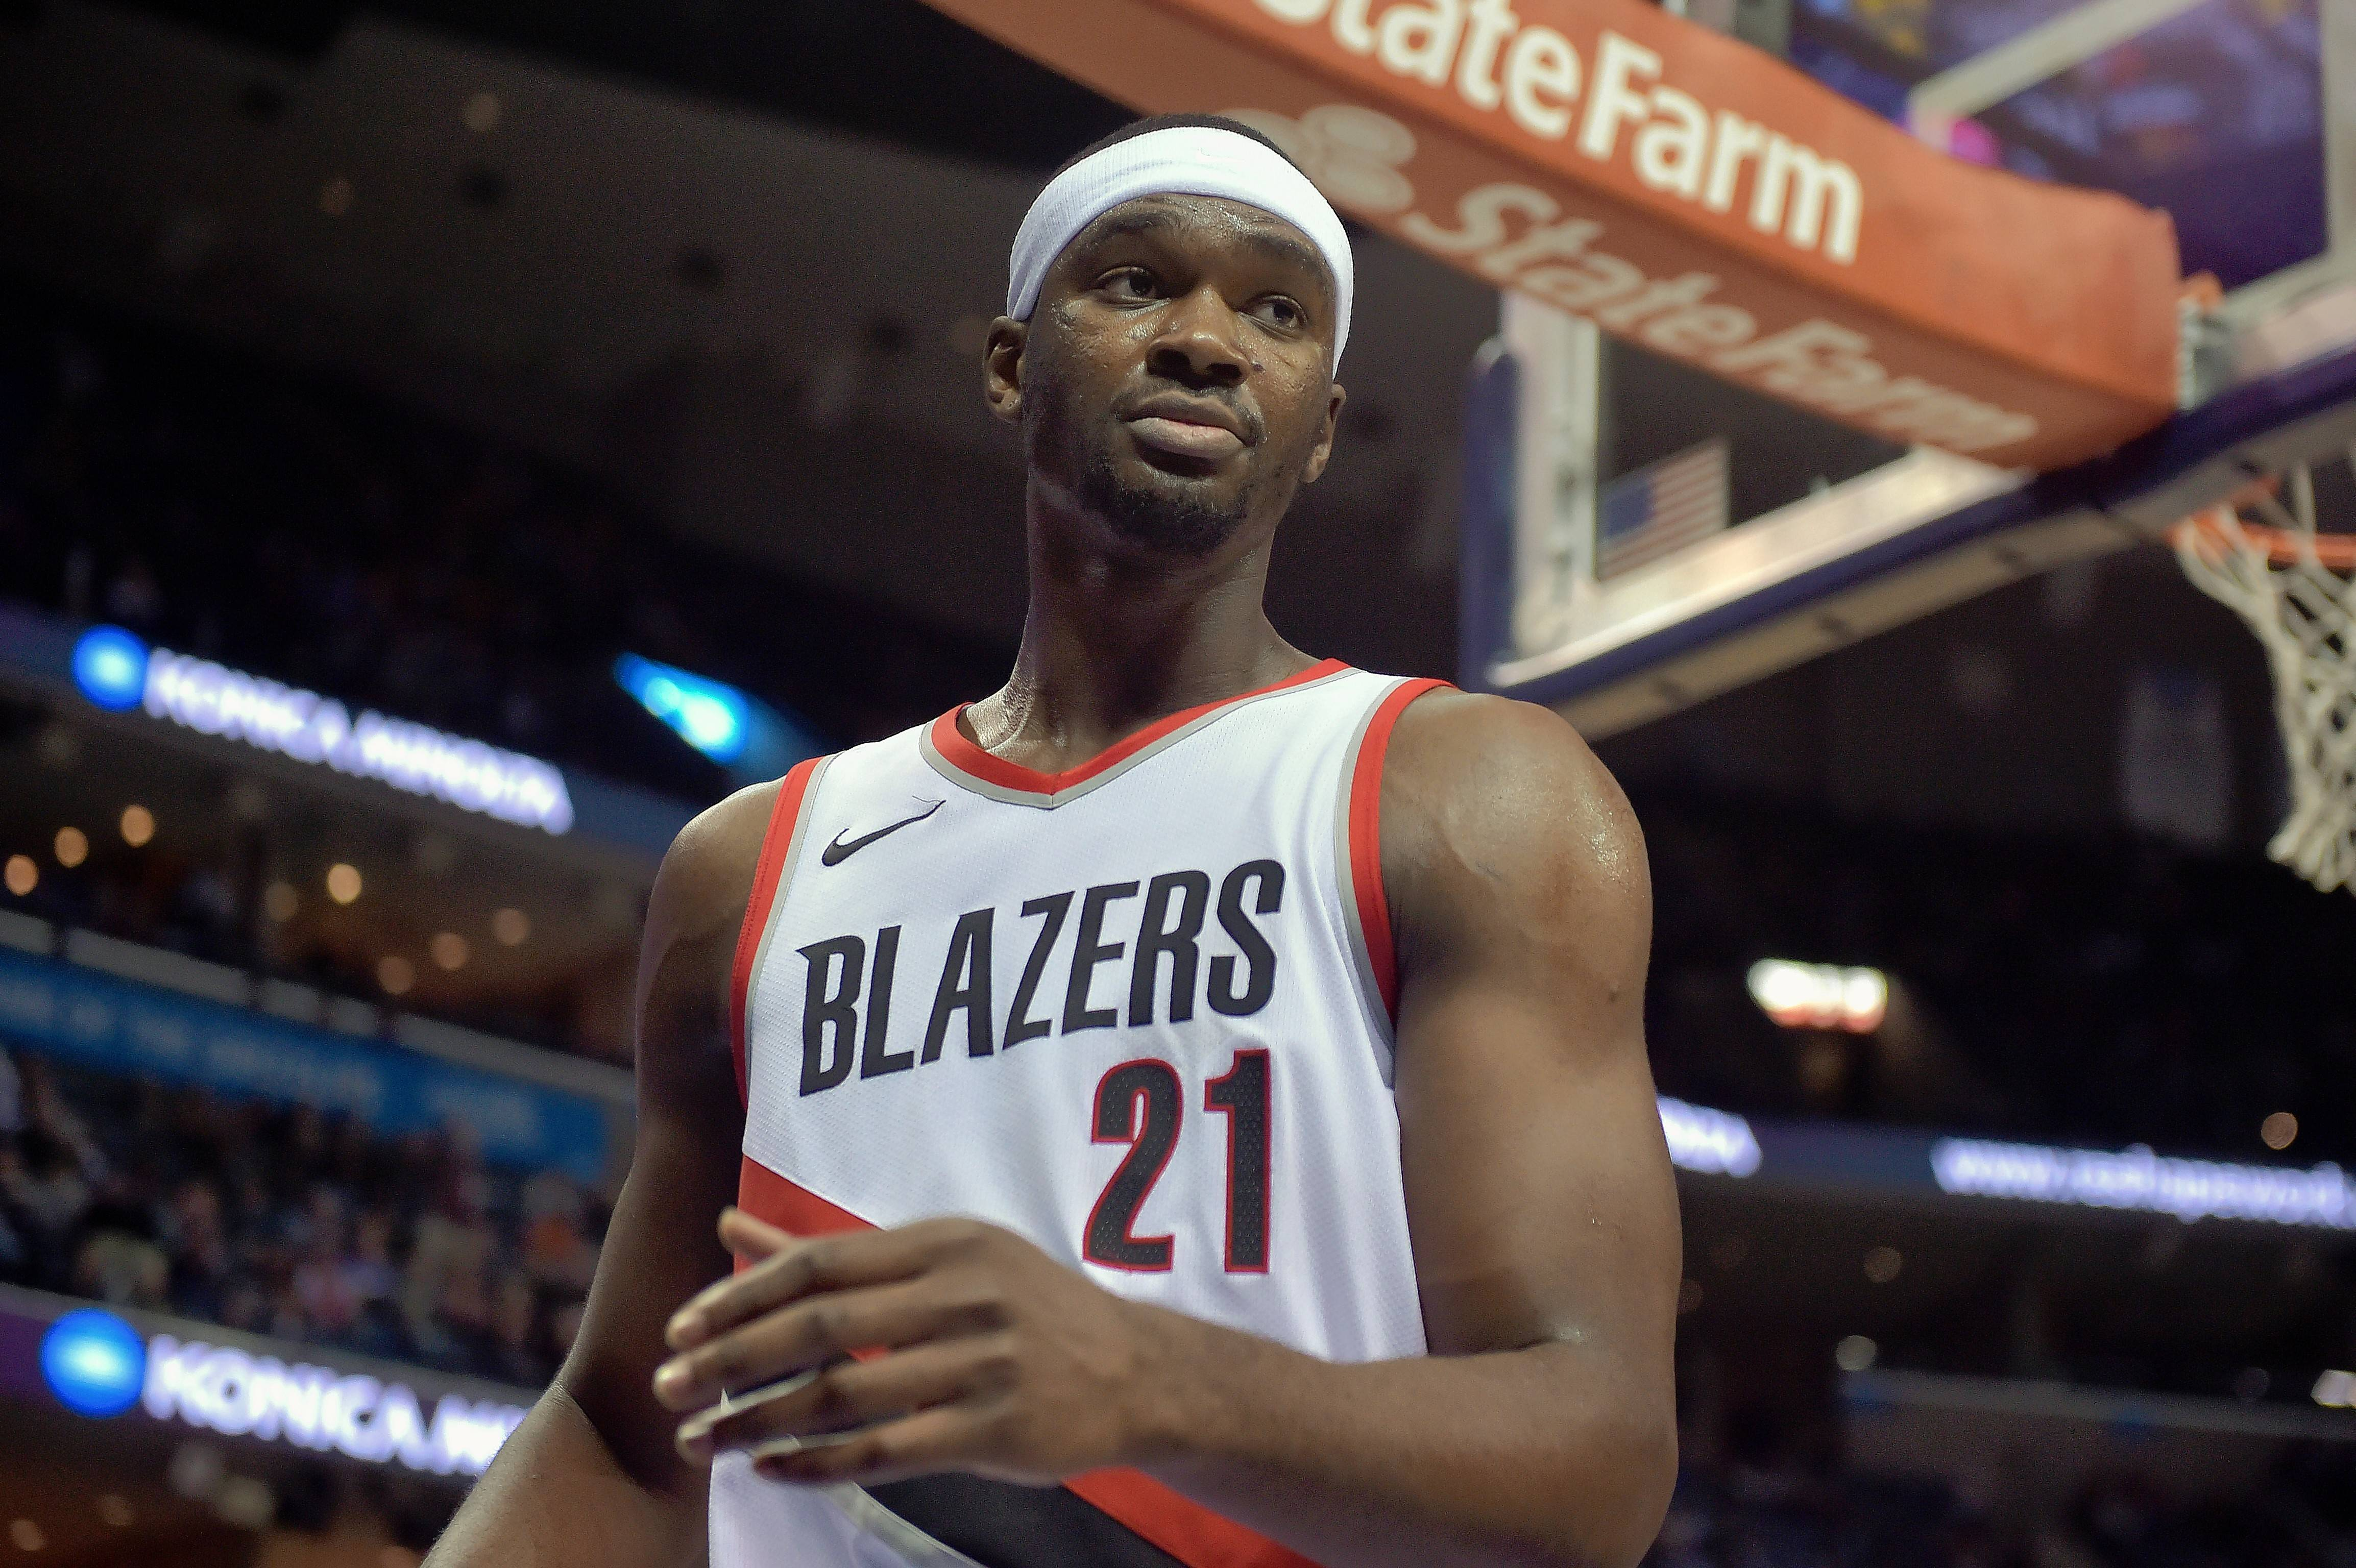 After a trade with Portland, forward Noah Vonleh is now a member of the Chicago Bulls.